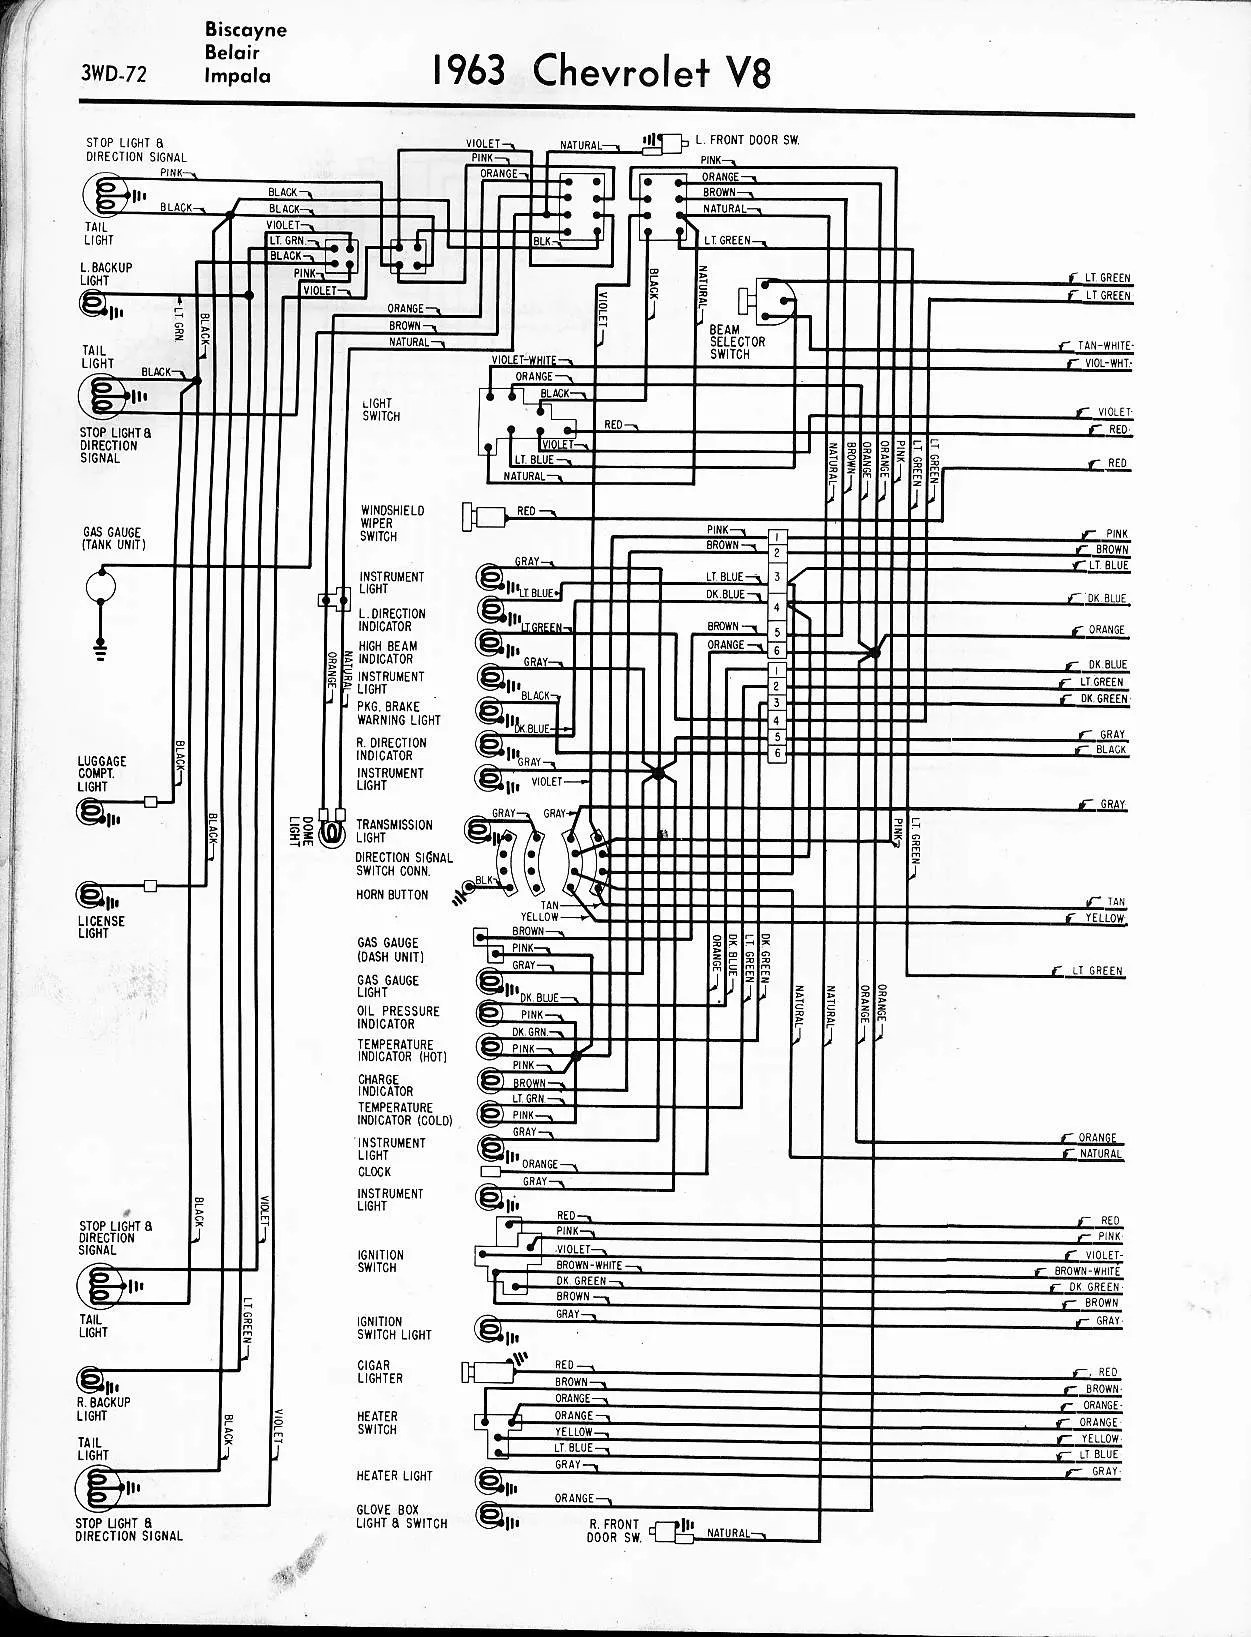 hight resolution of chevrolet bel air diagram complete 1966 chevrolet bel air wiring 1964 impala dash wiring diagram 1964 impala wiring diagram